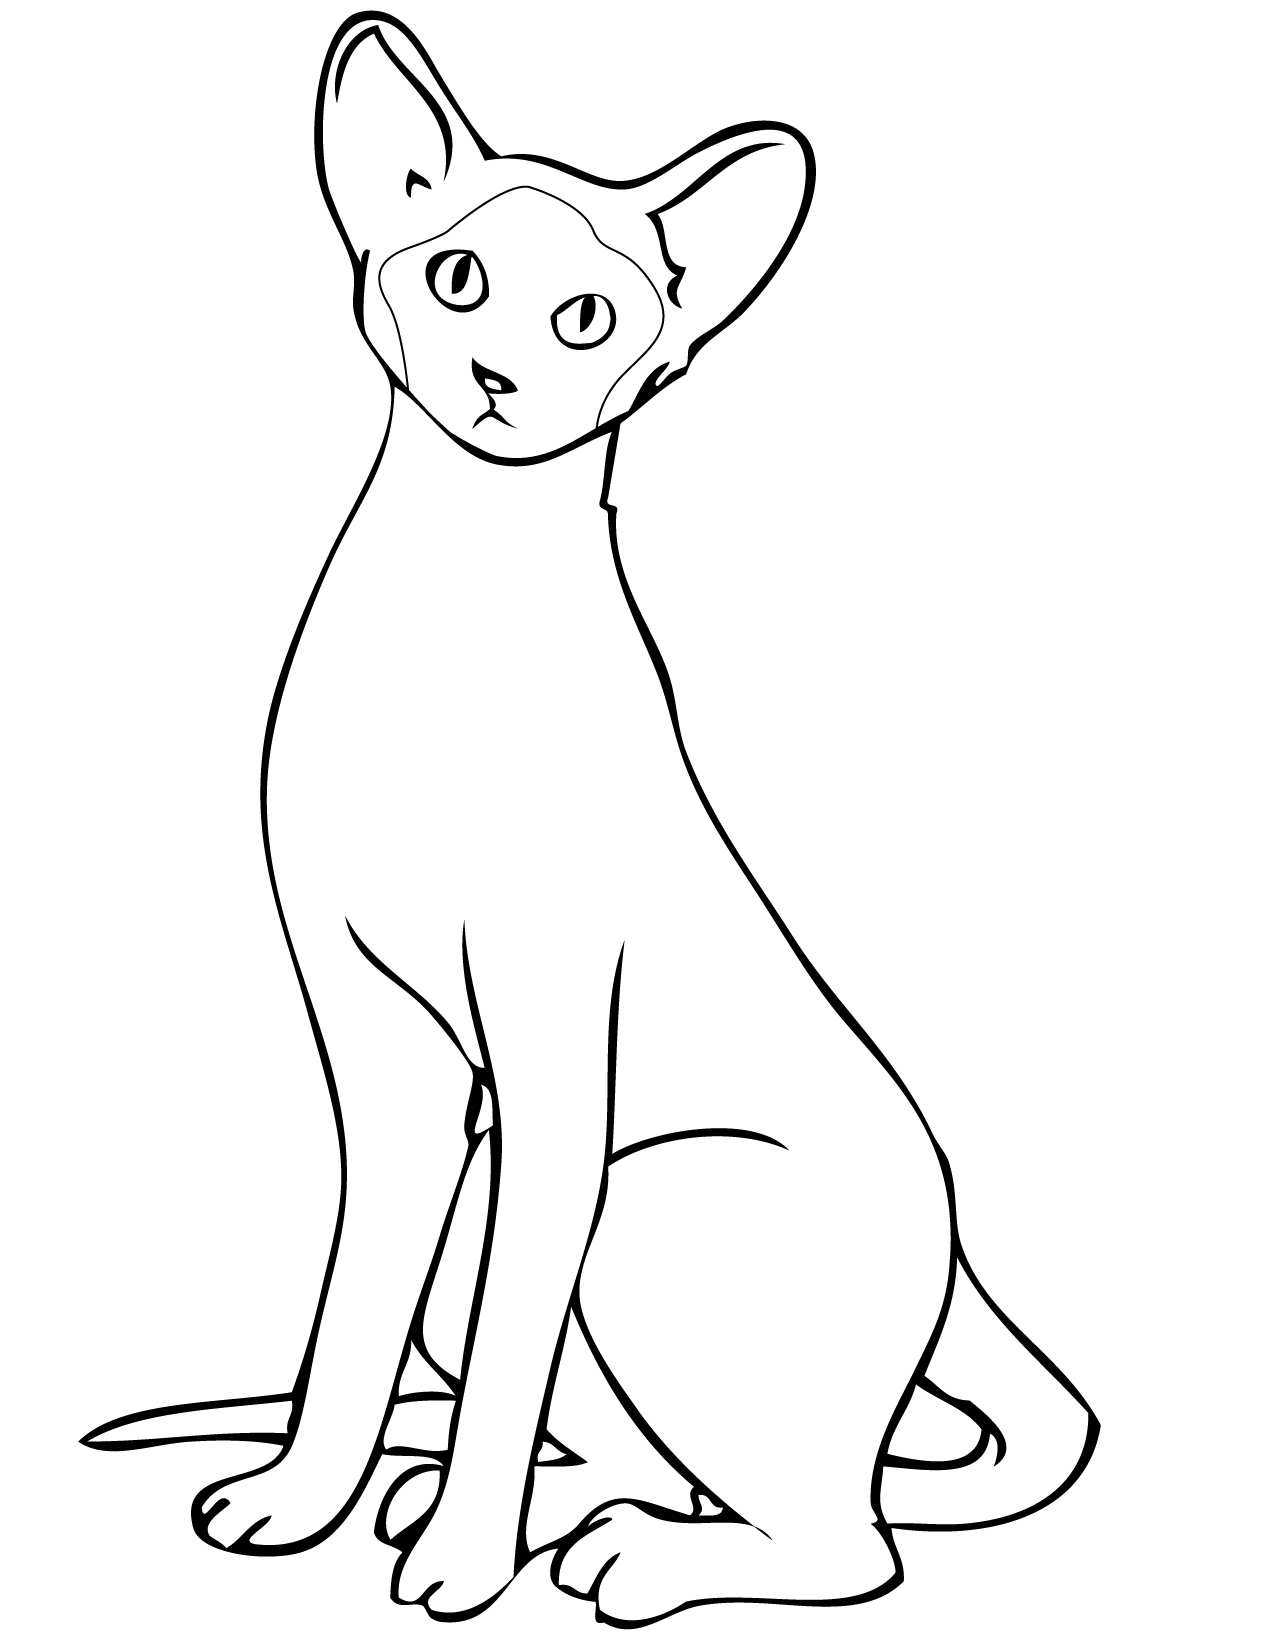 Simple Kitten Coloring Pages Alltoys for